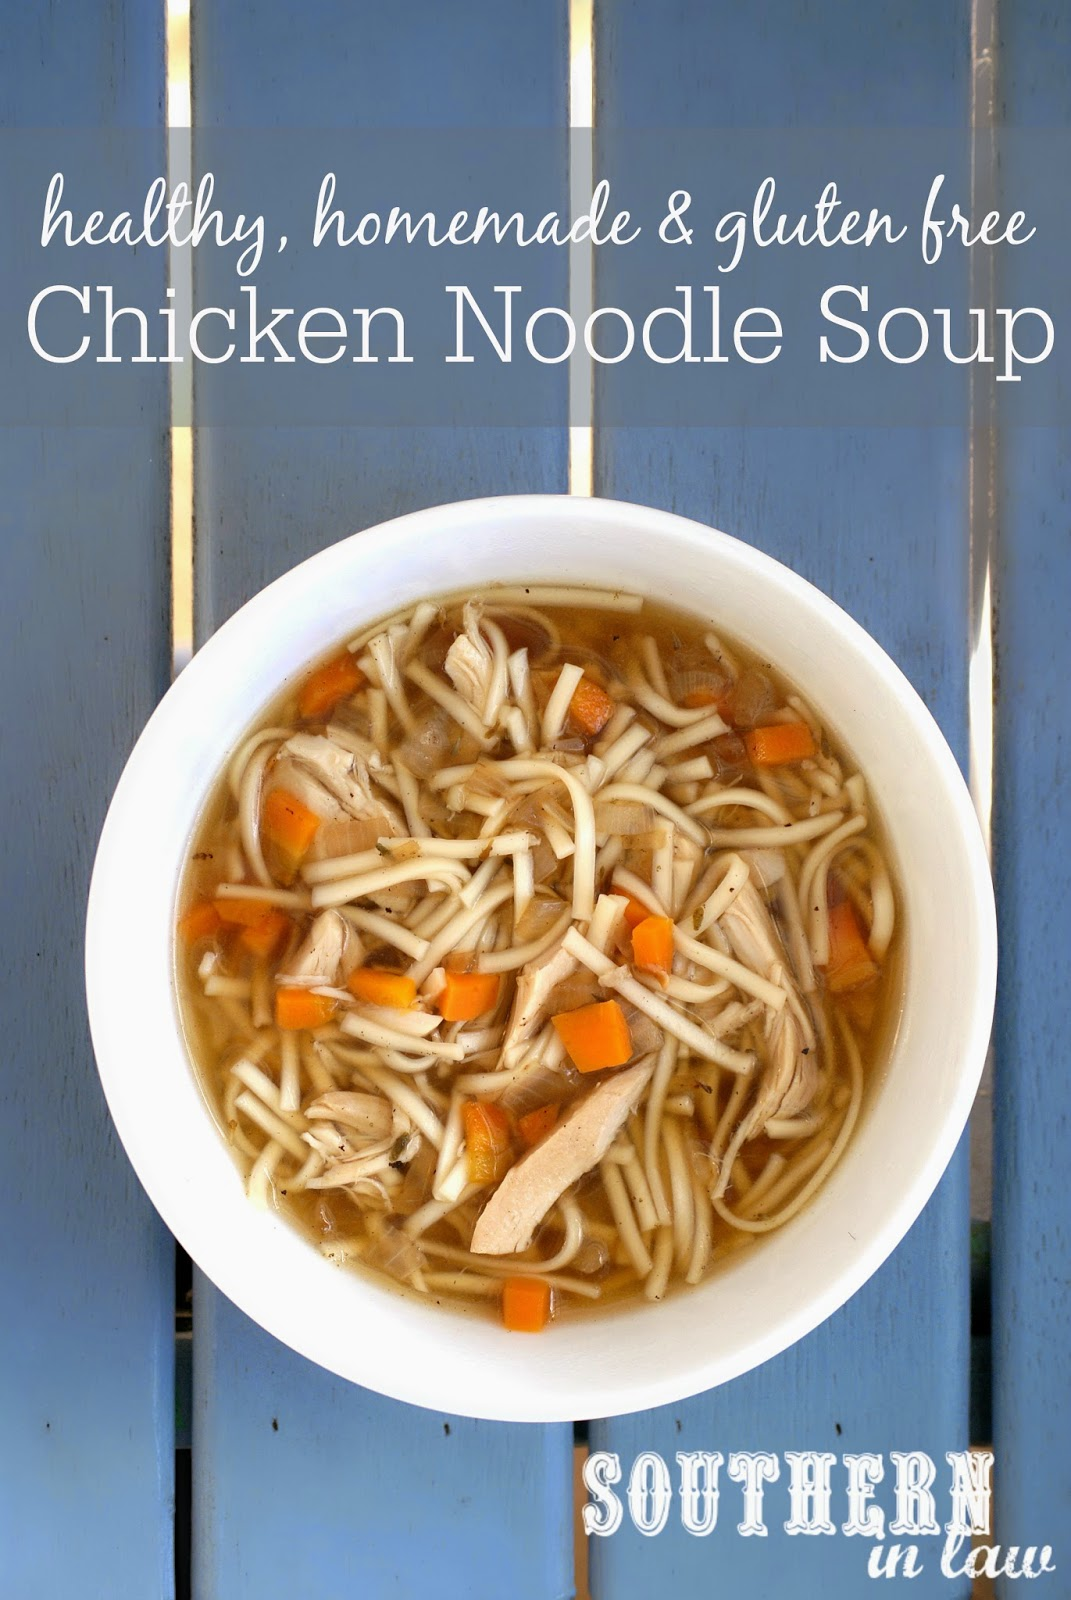 Healthy Chicken Noodle Soup Recipe Made From Scratch - gluten free, additive free, sugar free, clean eating friendly, healthy, low fat